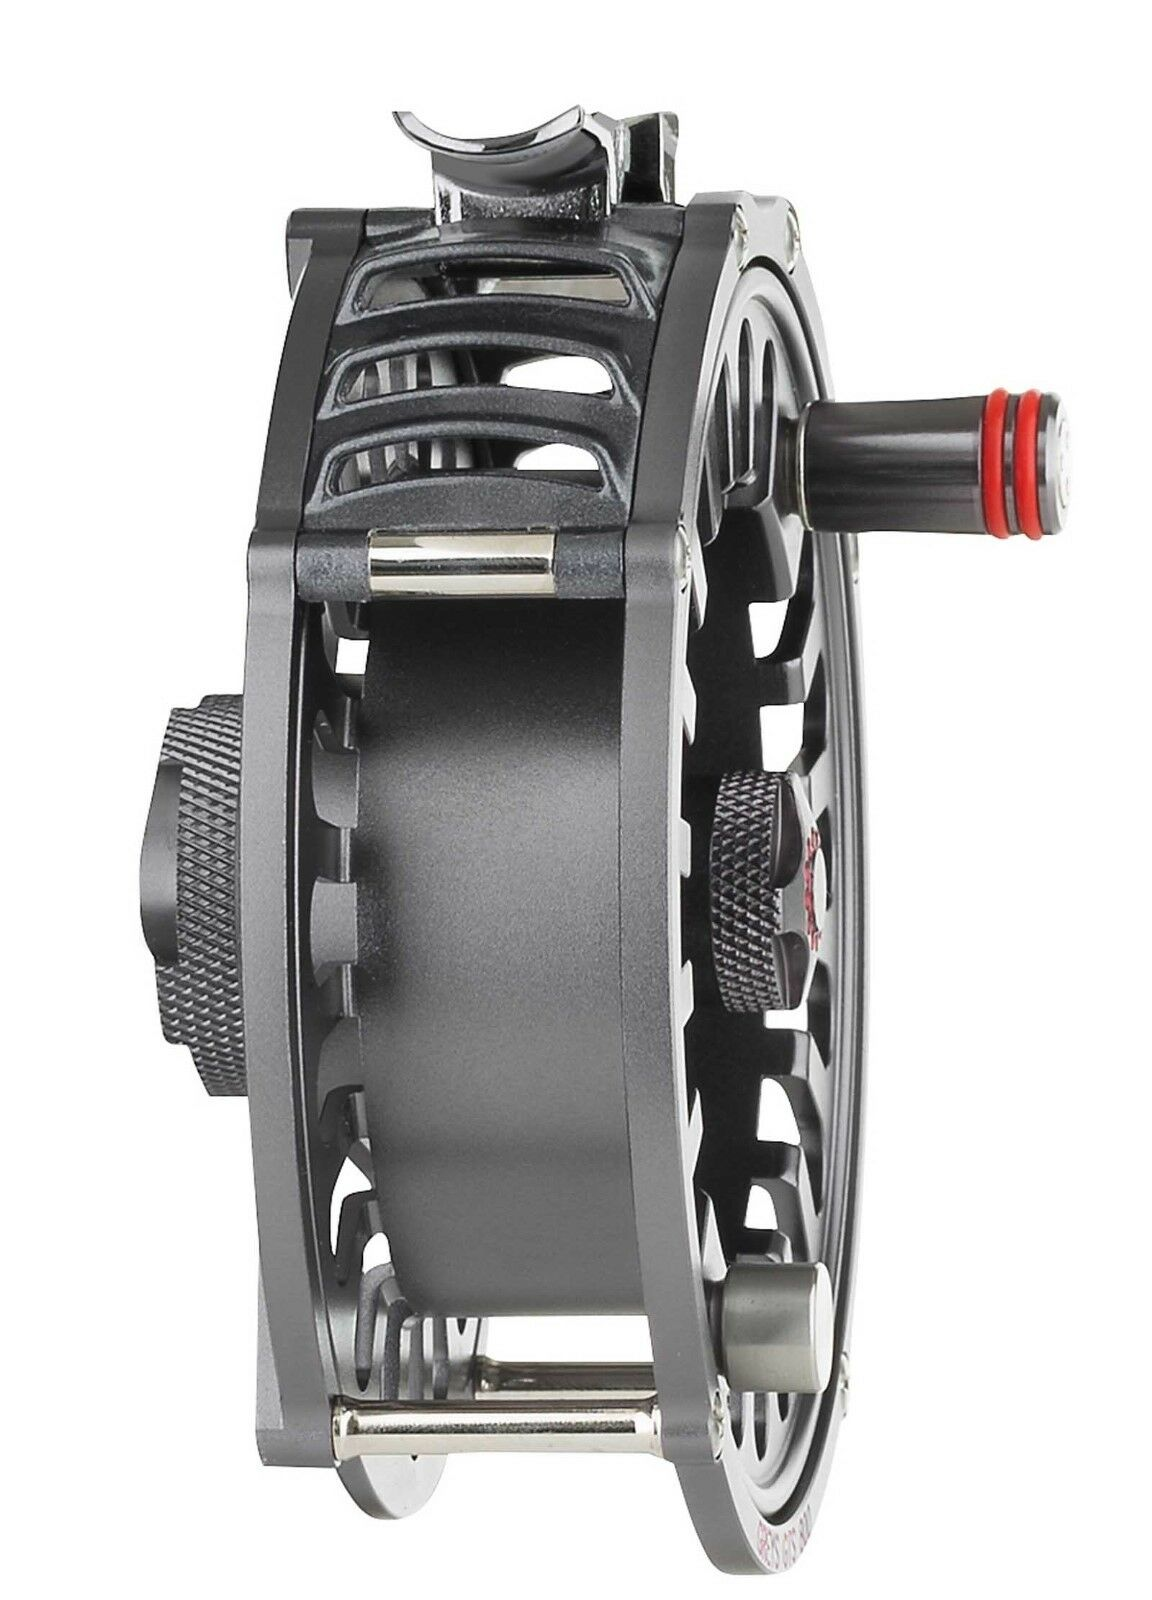 Graus New Reels GTS800 Trout & Salmon Freshwater Fly Fishing Reels New or Spare Spools e80a69